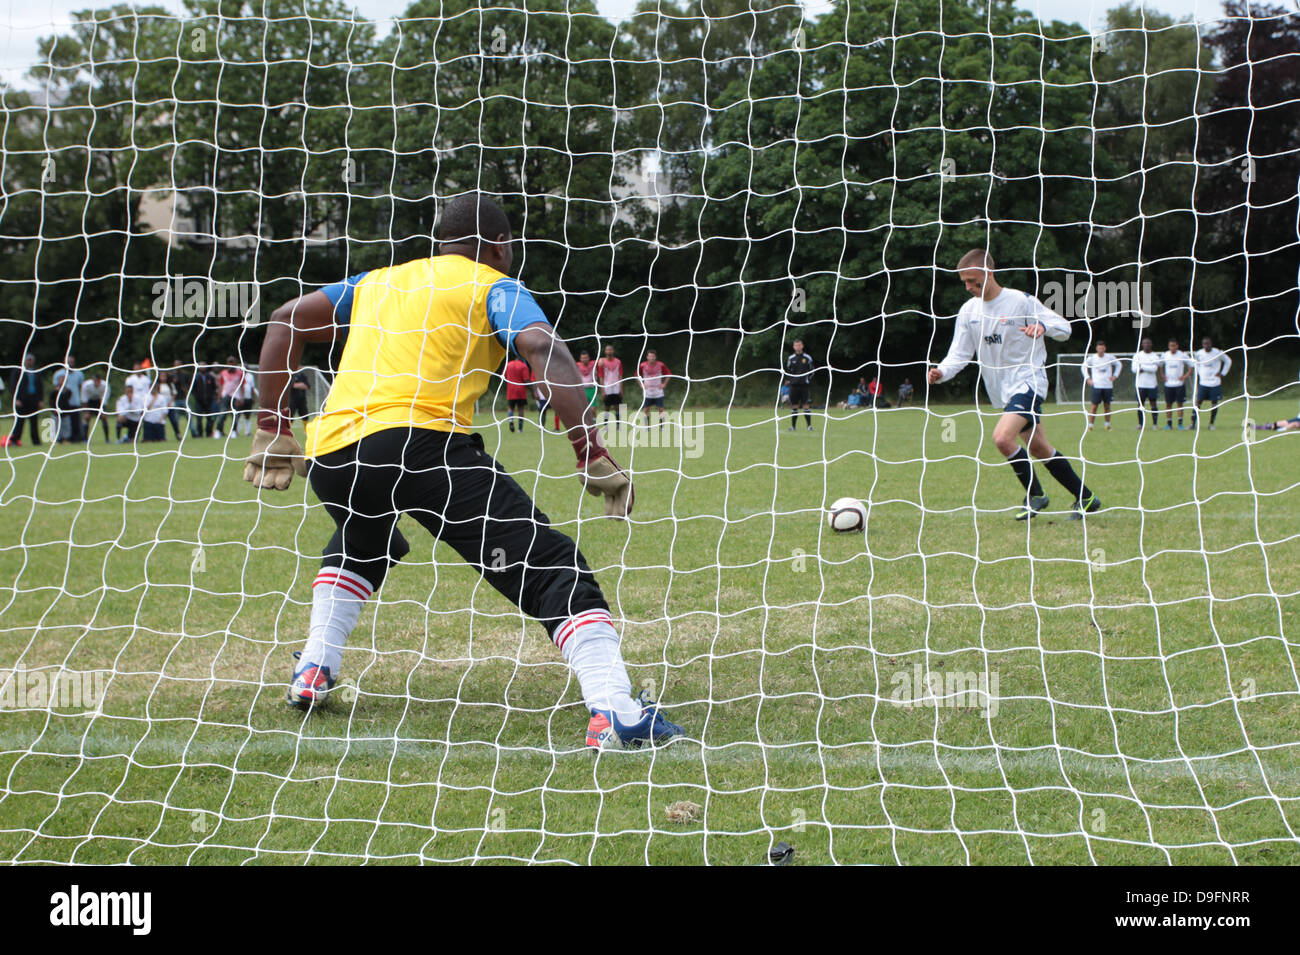 A footballer about to take a penalty kick. Playing football. Playing soccer. - Stock Image